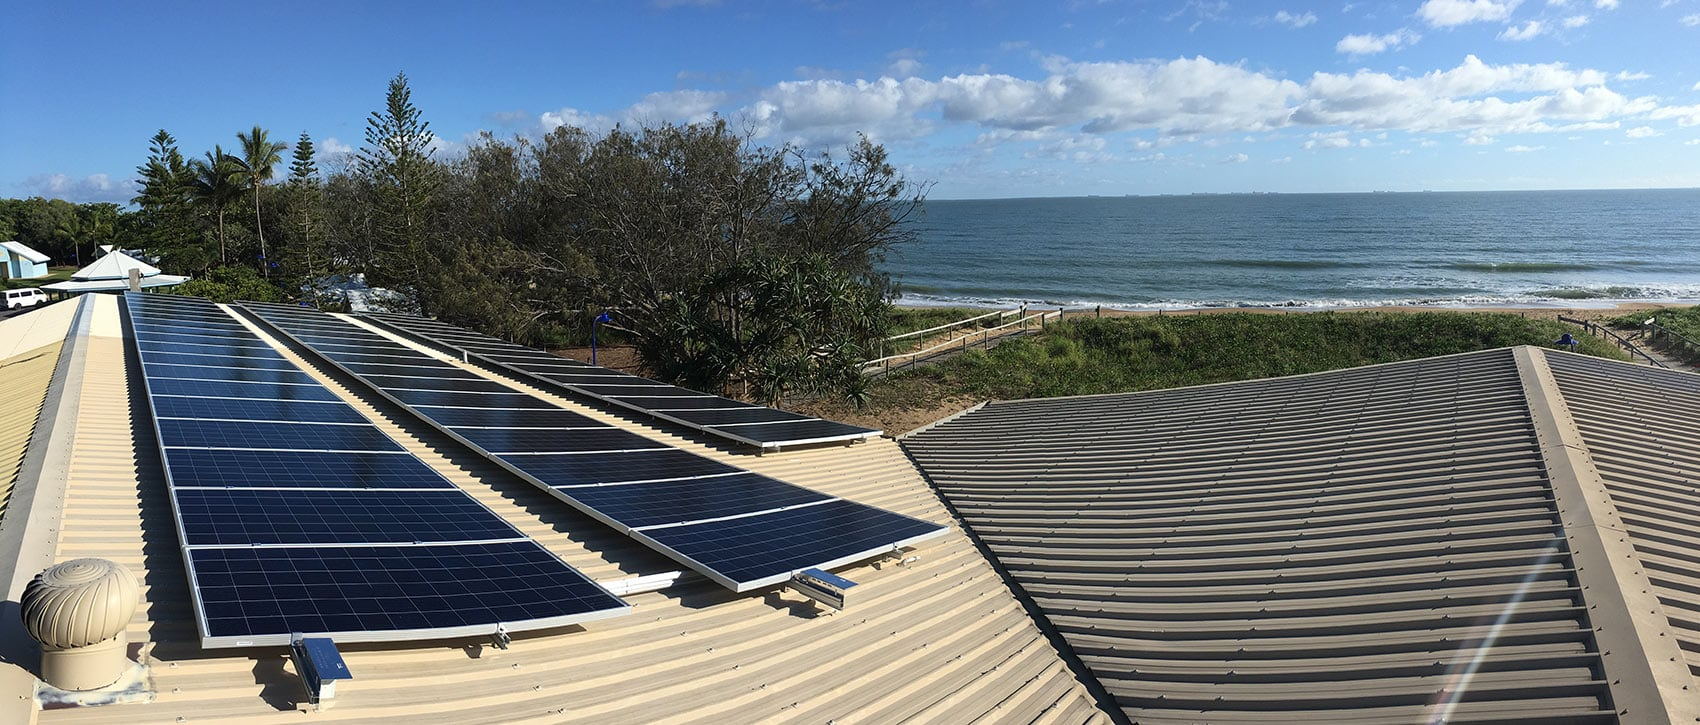 solar panels on a roof with the sea in the background